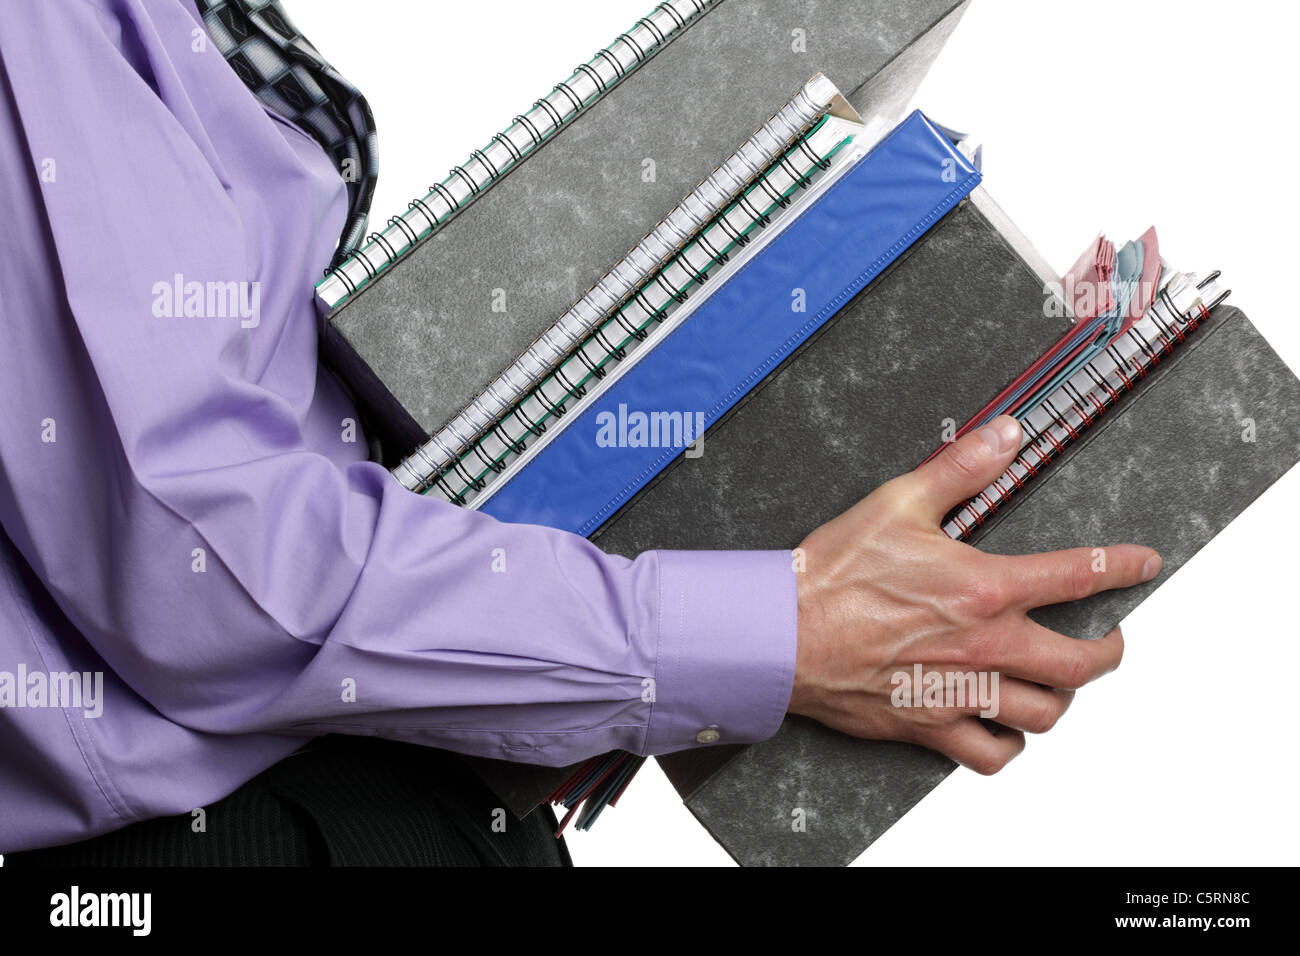 Too much work - Stock Image